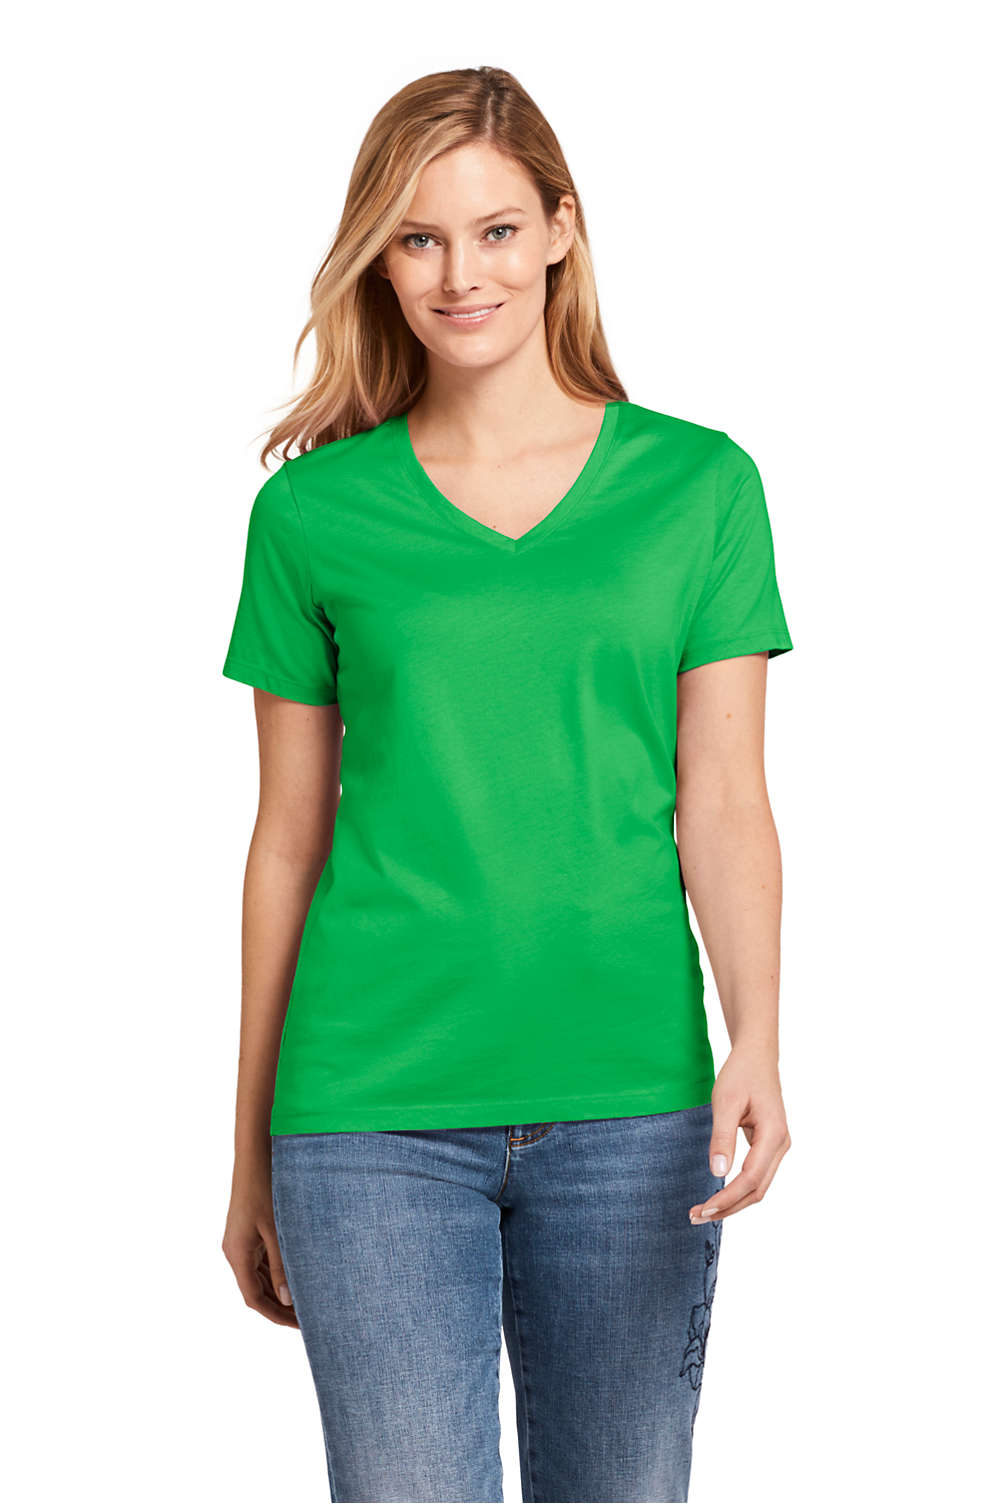 518effde9d7 Women s Supima Cotton Short Sleeve T-shirt - Relaxed V-neck from ...